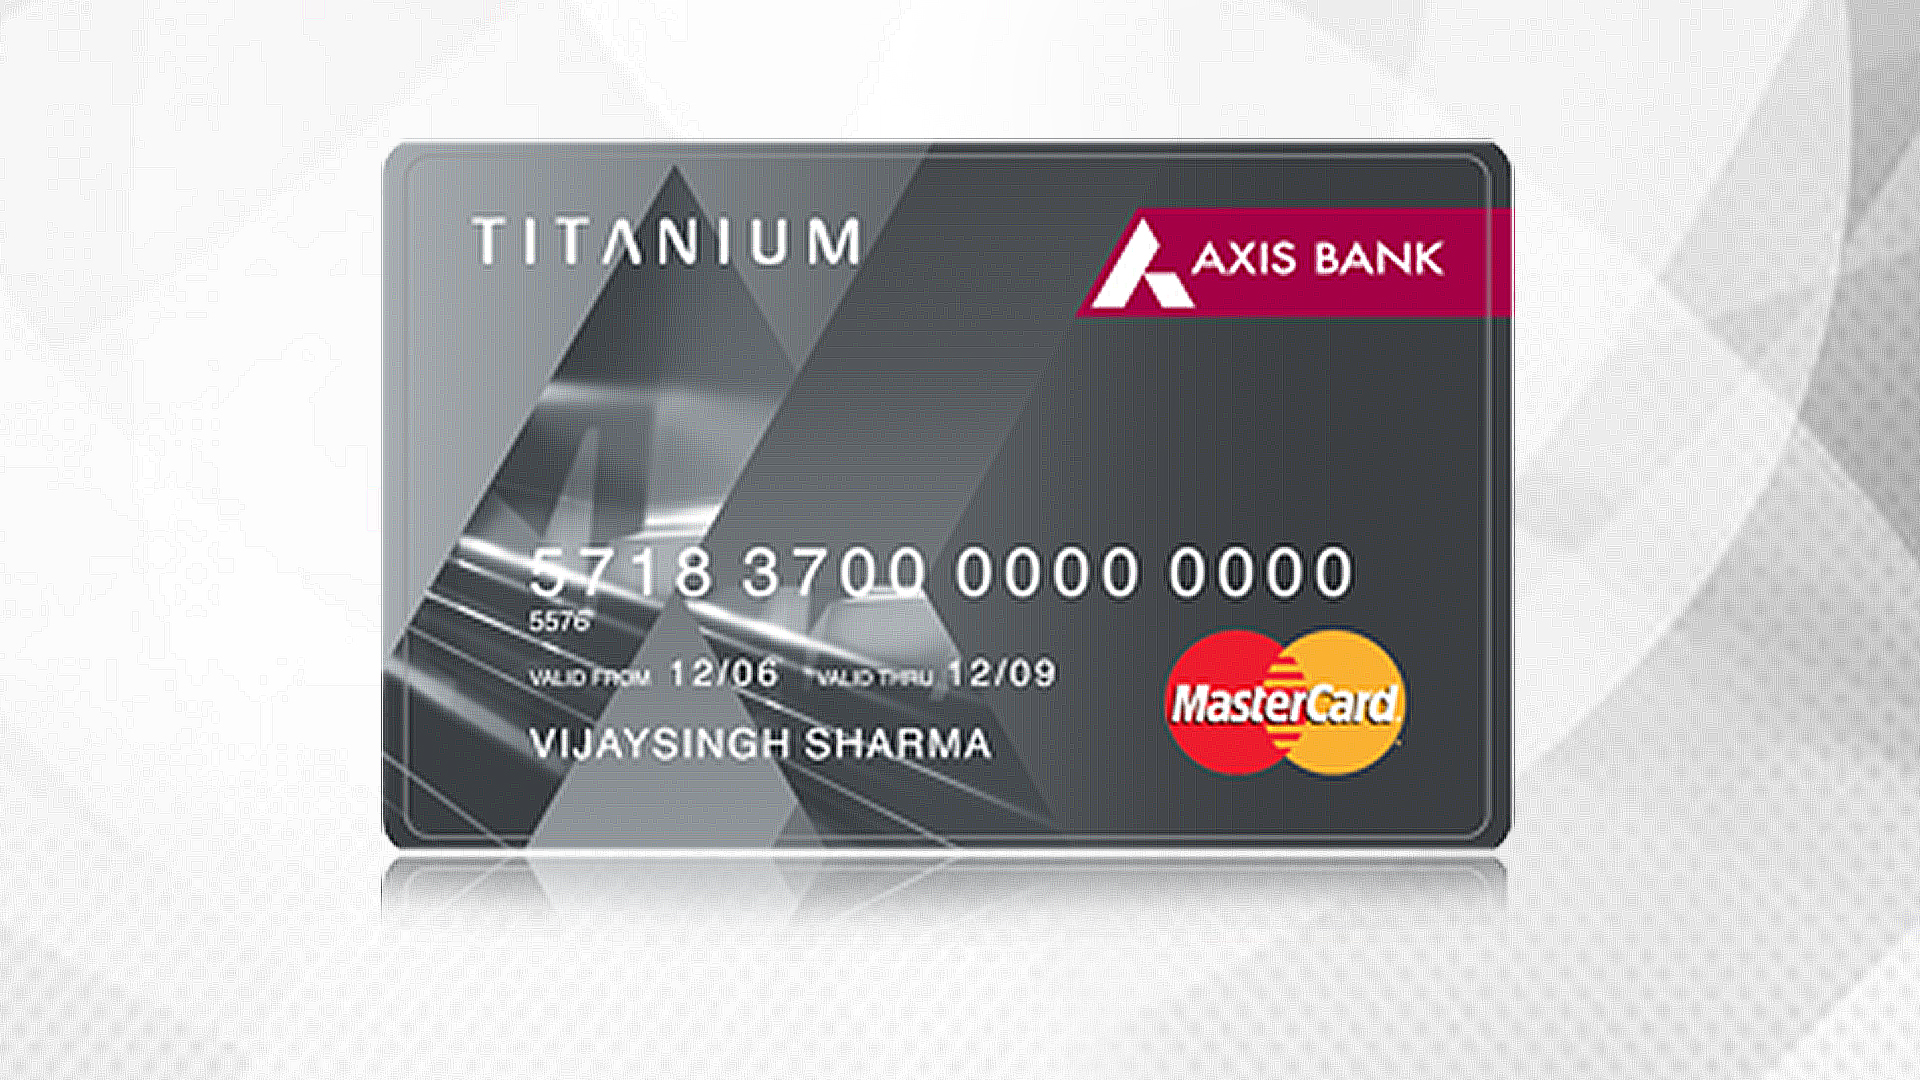 Axis Bank Titanium Smart Traveller Credit Card